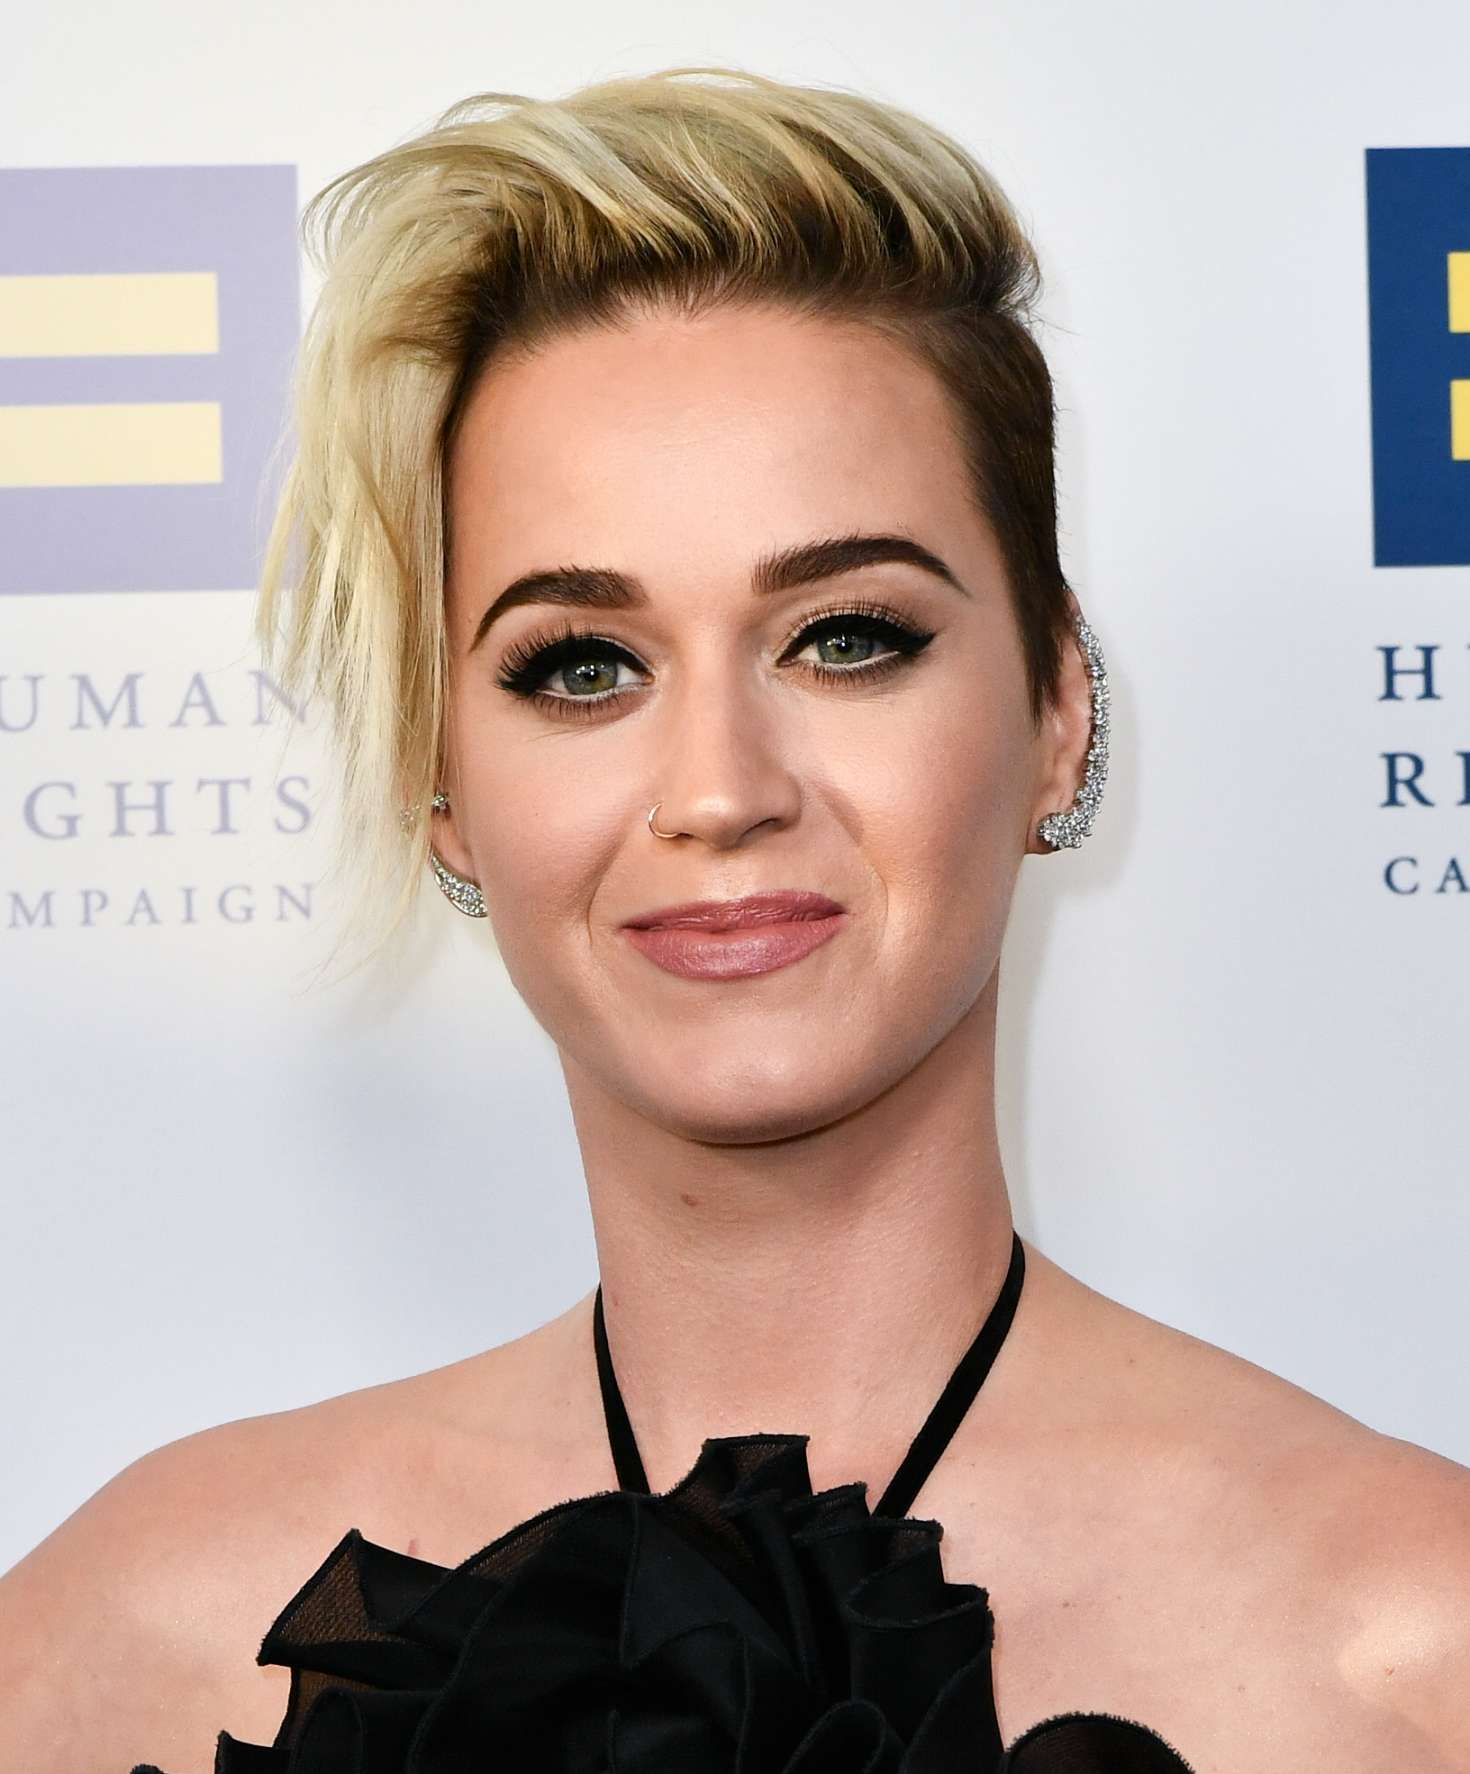 Katy Perry: Human Rights Campaign Gala Dinner 2017 -25 ... кэти перри 2017